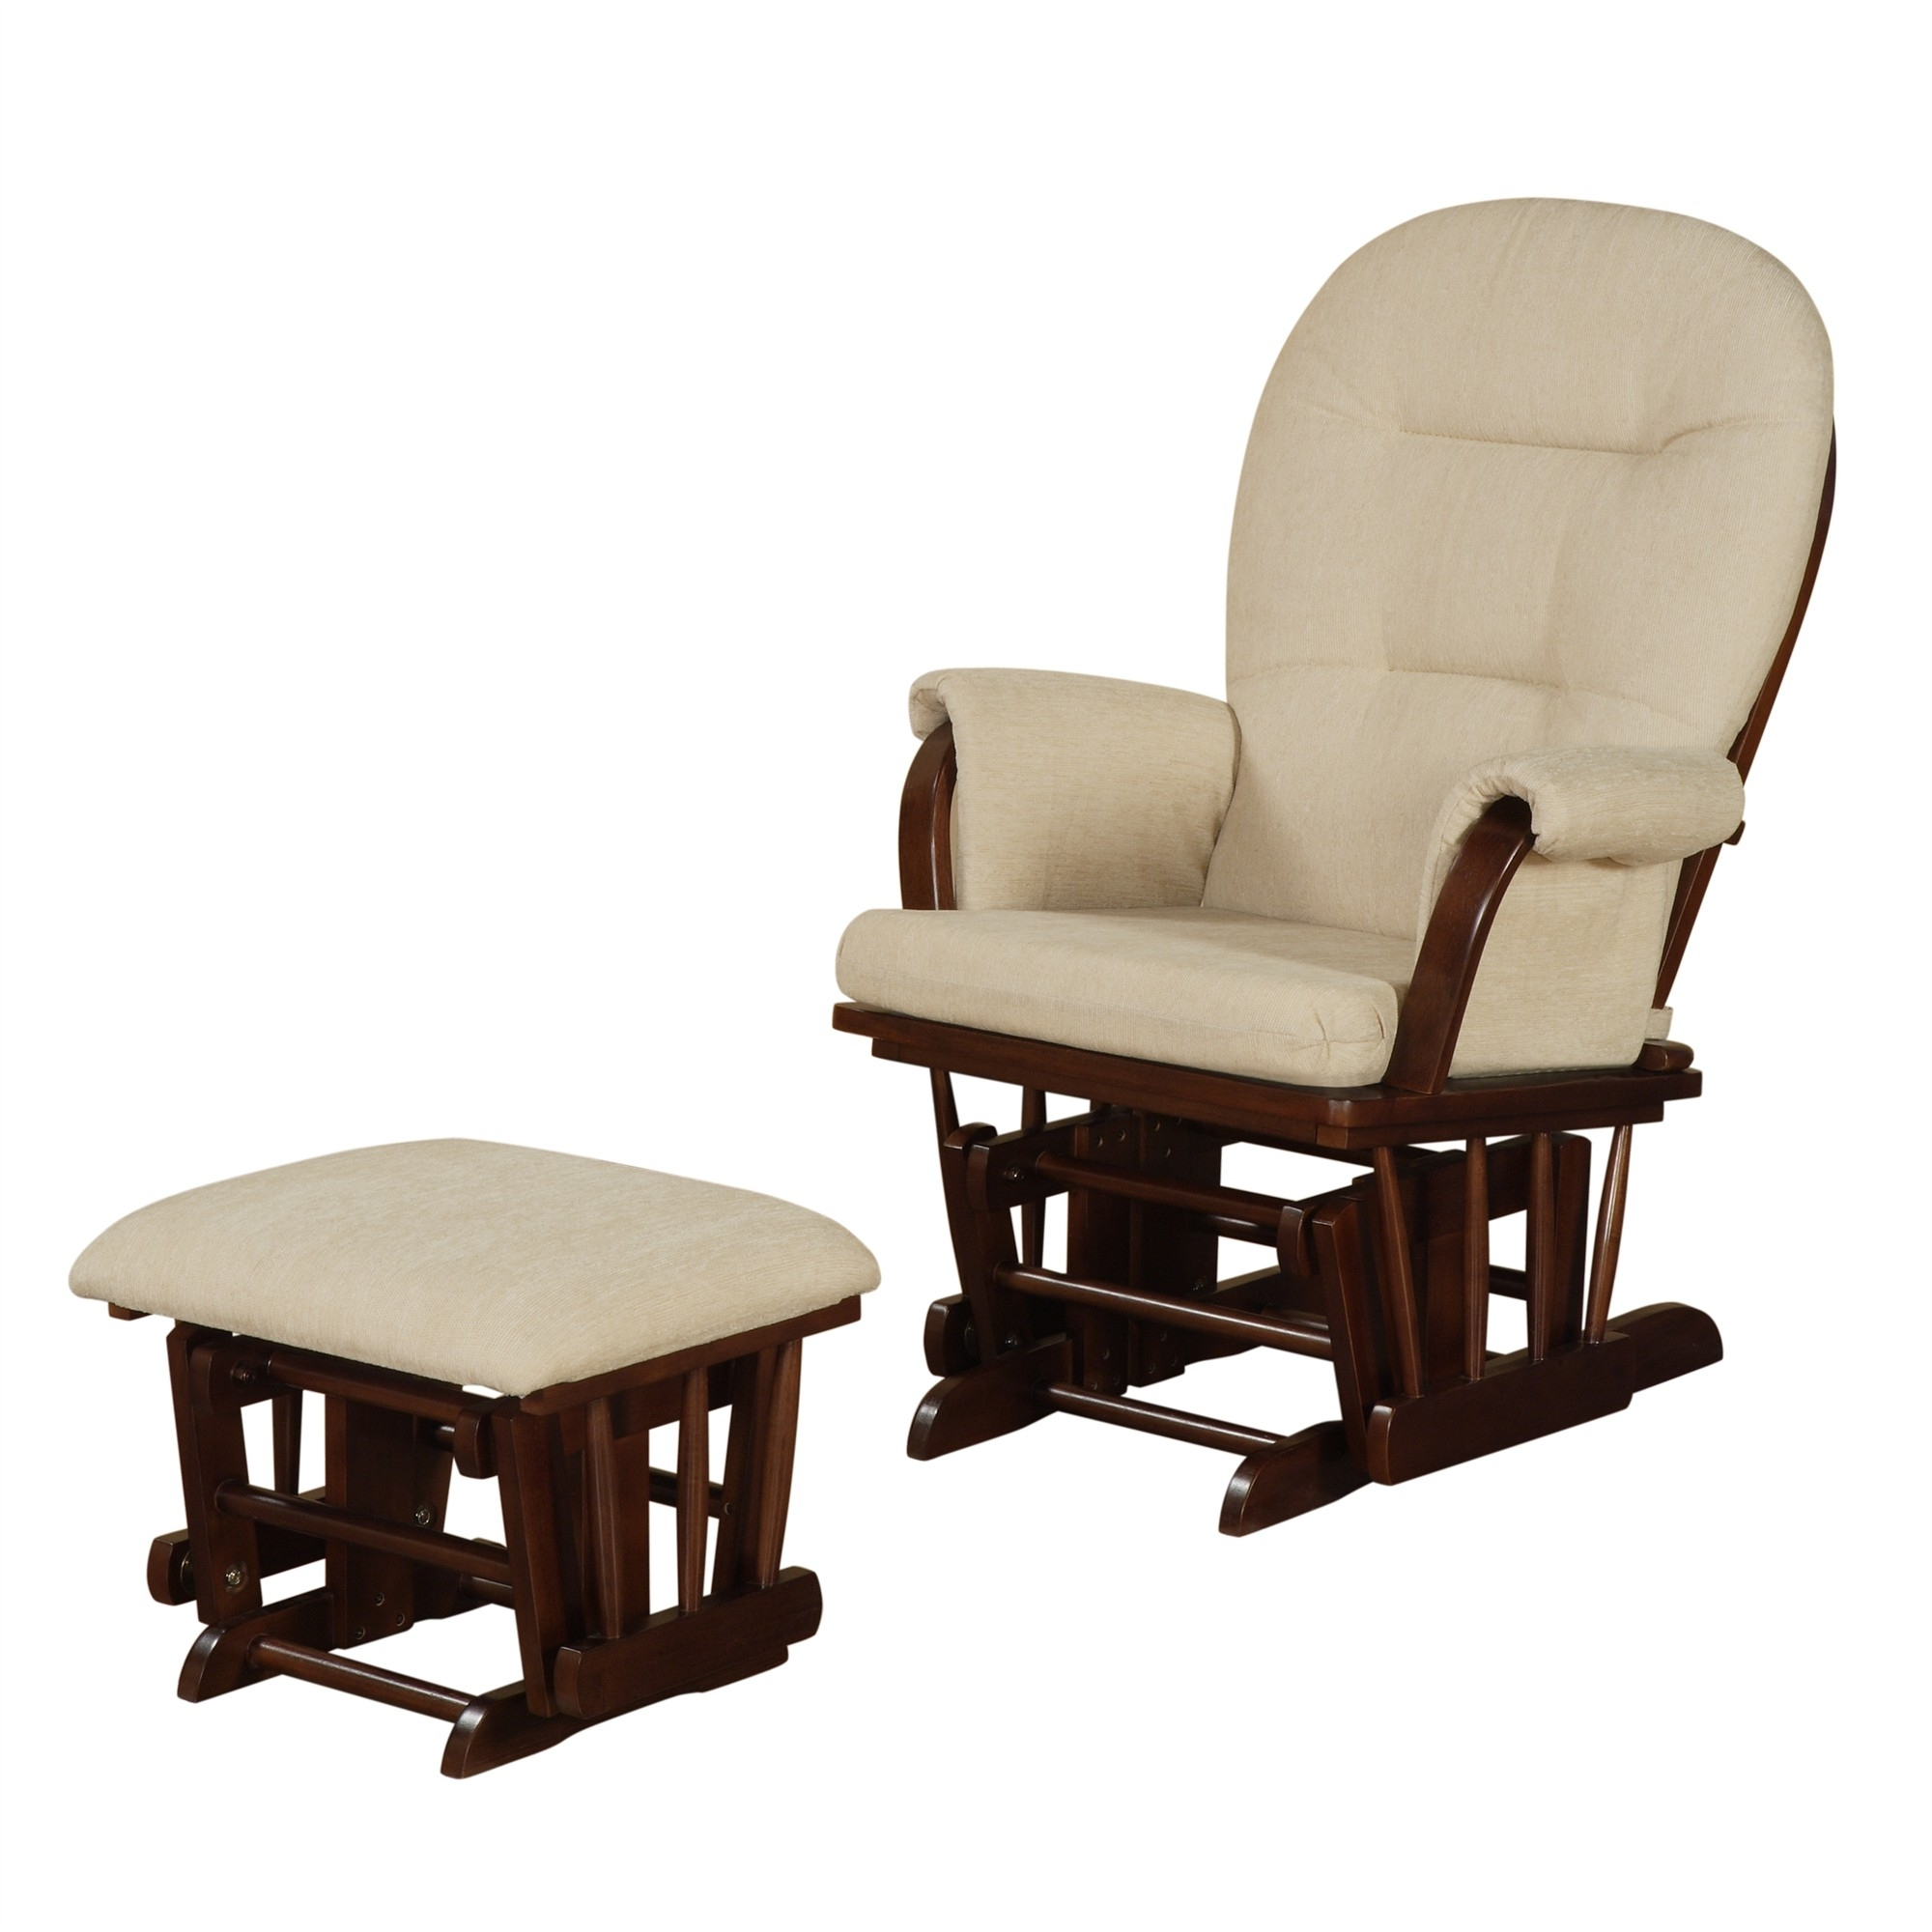 Fashionable Rocking Chairs With Ottoman With Used Glider Rocker With Ottoman For Sale Rocking Chair Cushions Grey (View 3 of 20)